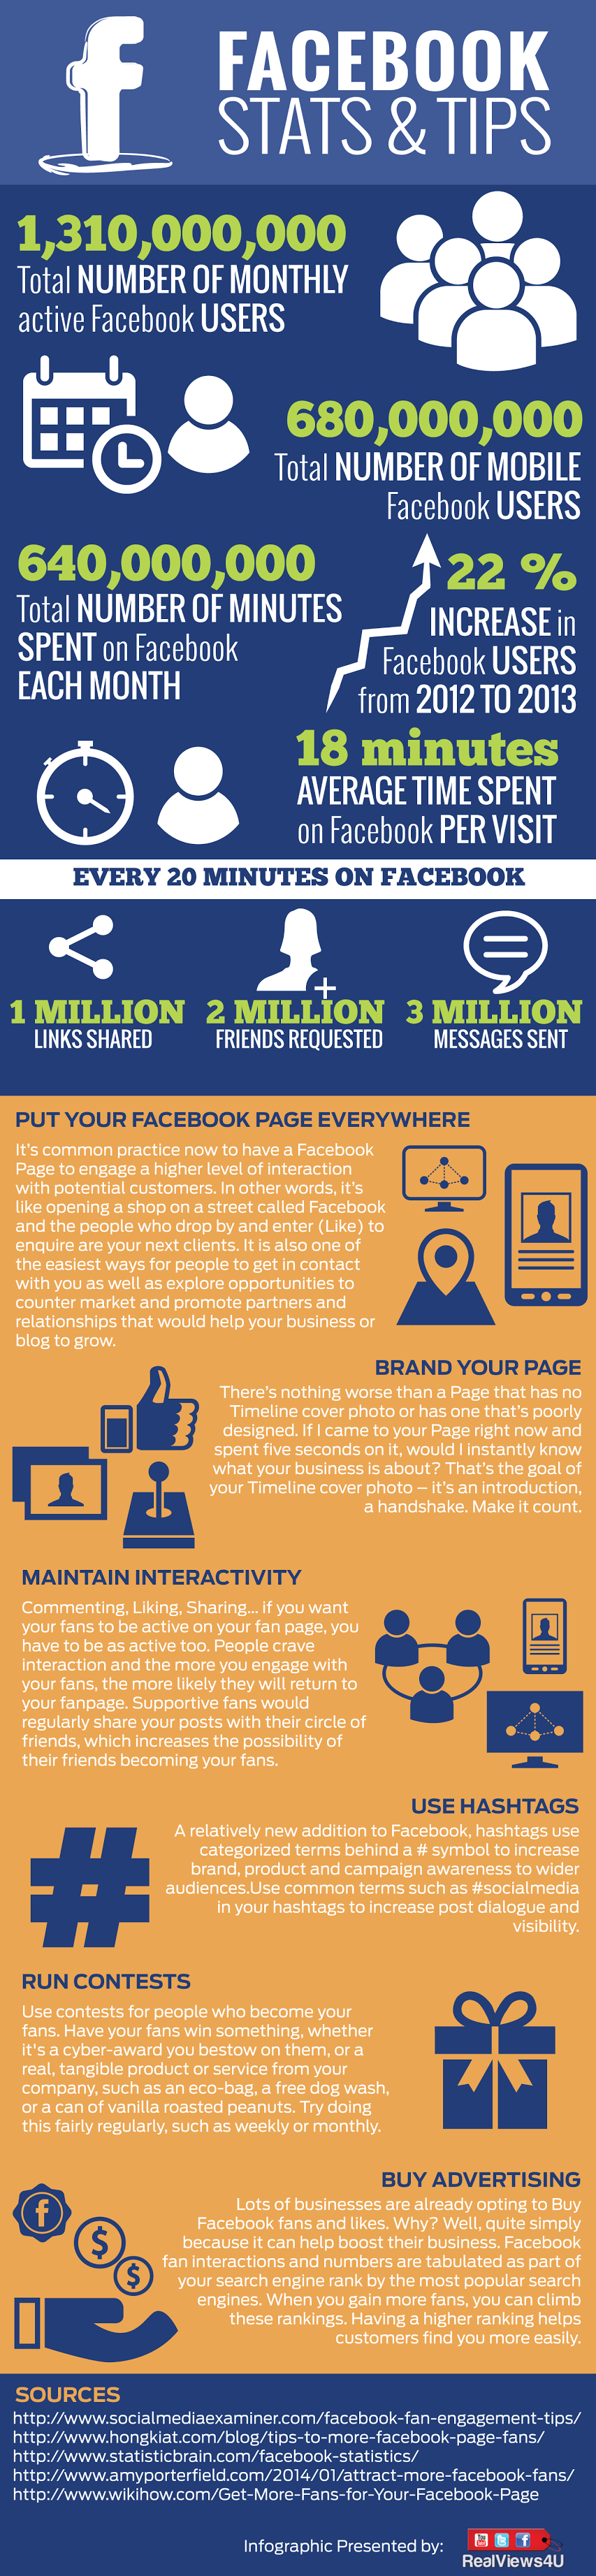 #Facebook Stats And Tip For Businesses - #infographic #socialmedia